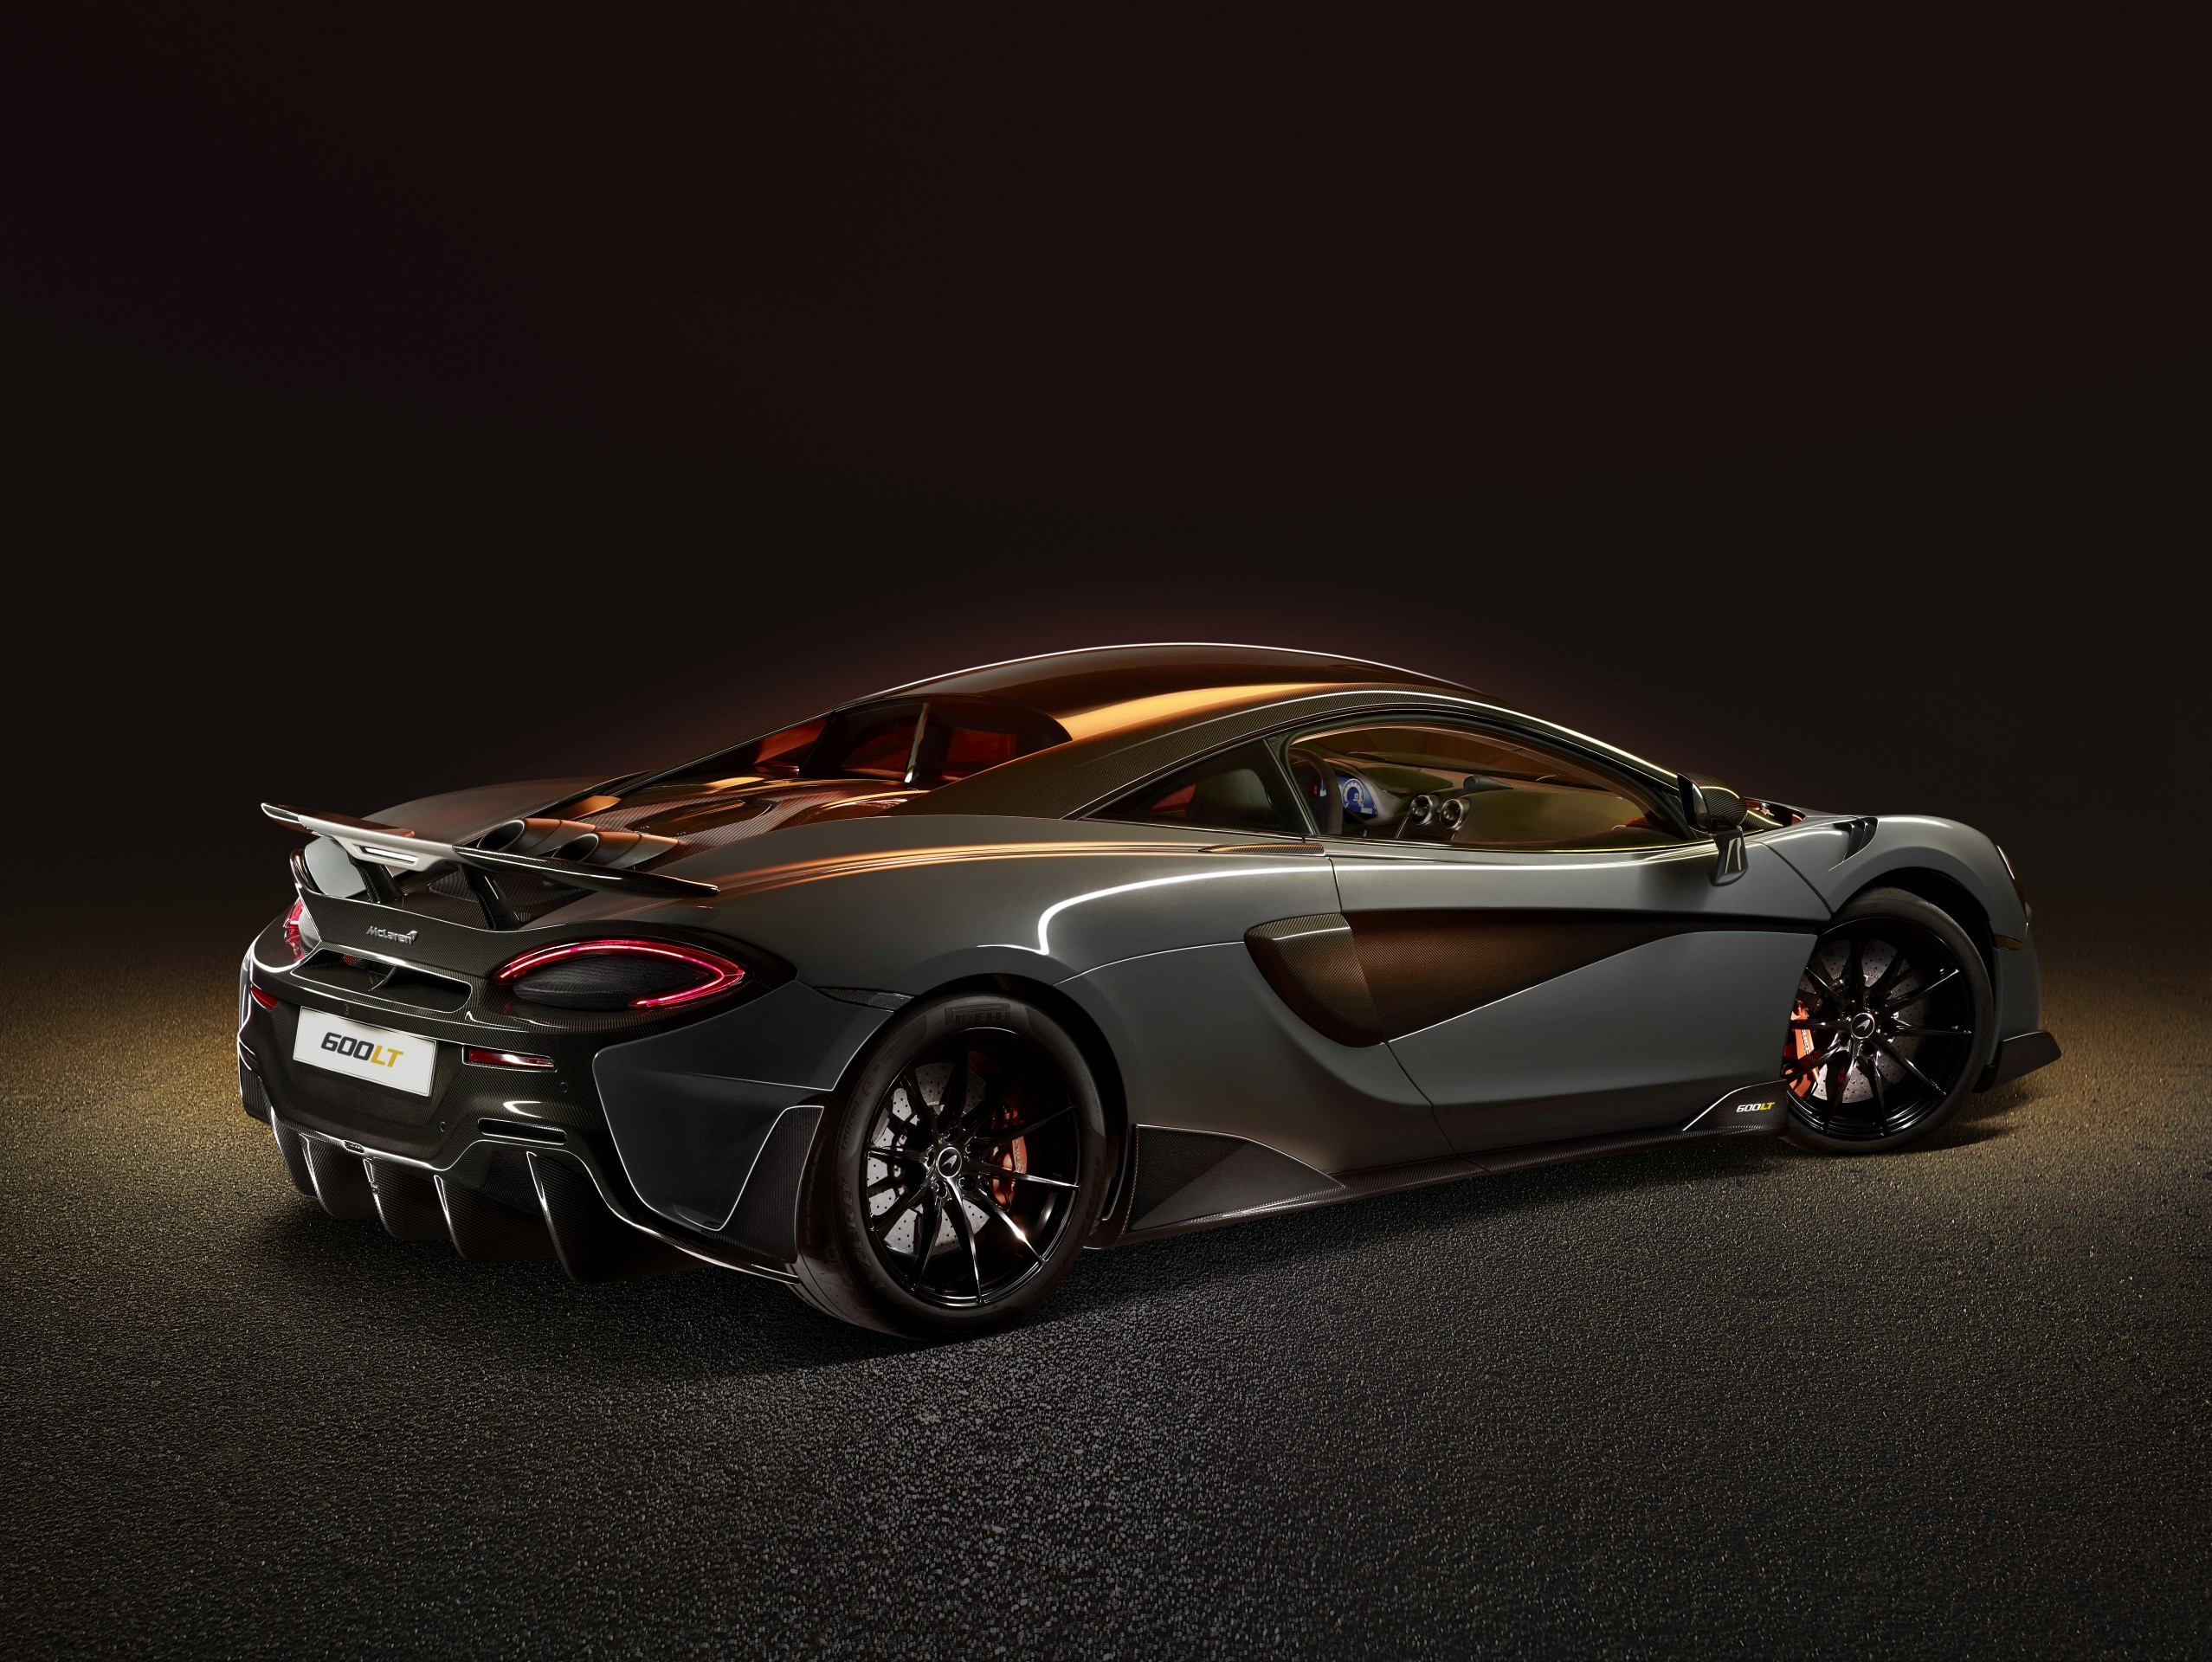 McLaren reveals 600LT Longtail with 592 horsepower